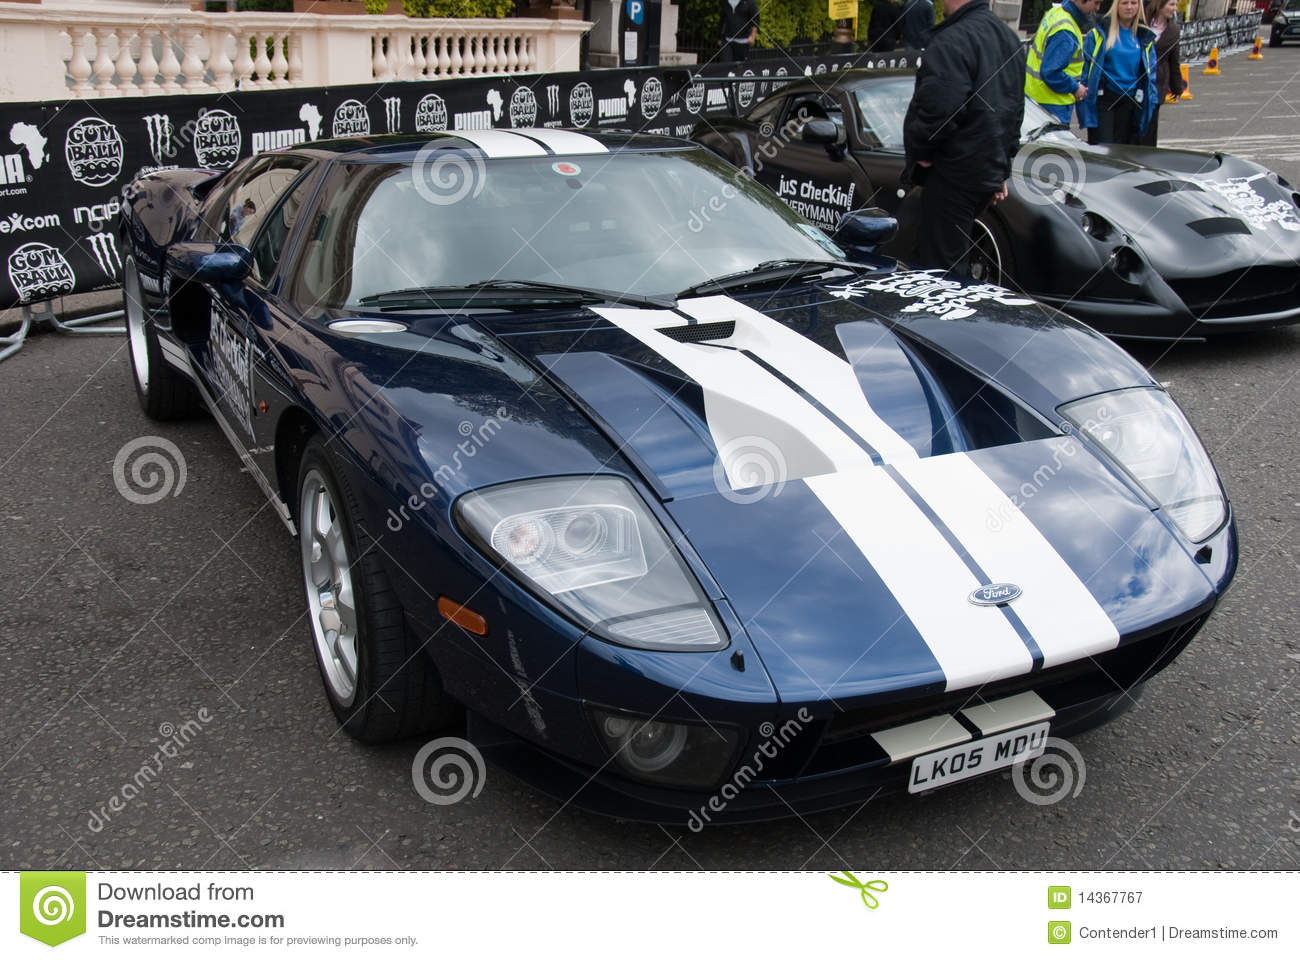 ford gt gumball rally london 2010 editorial photography - Ford Gt 2010